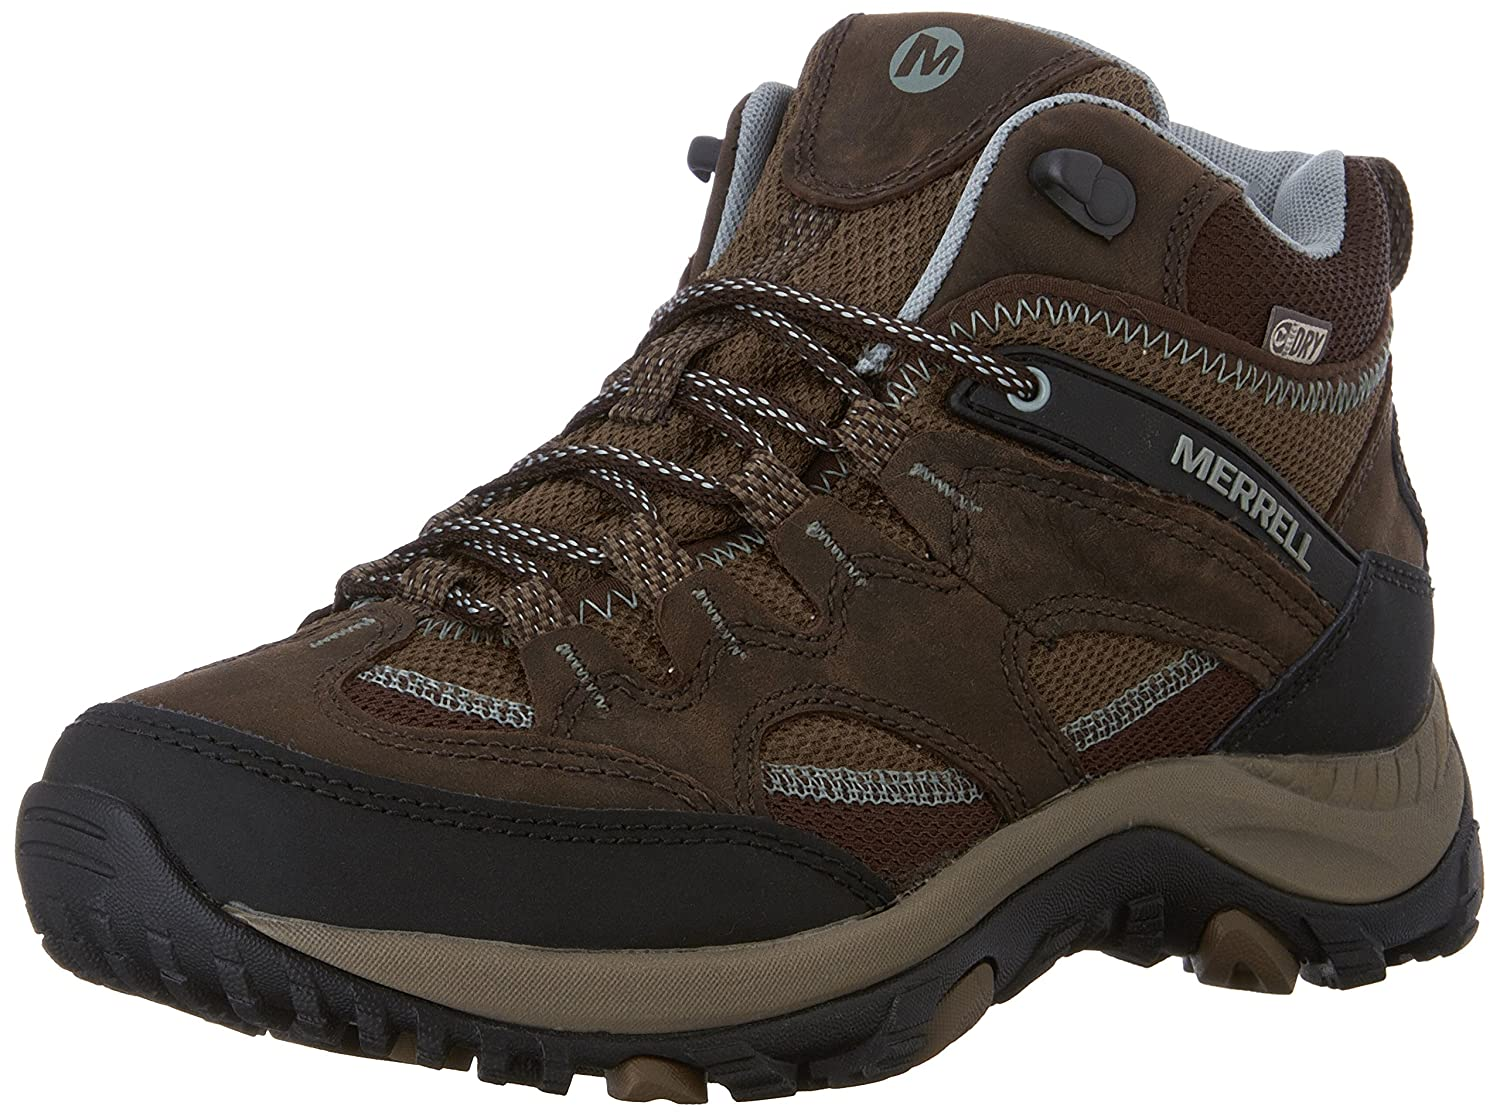 06c64ca8bfb Merrell Women's Salida Mid WTPF Ankle Boot Brown